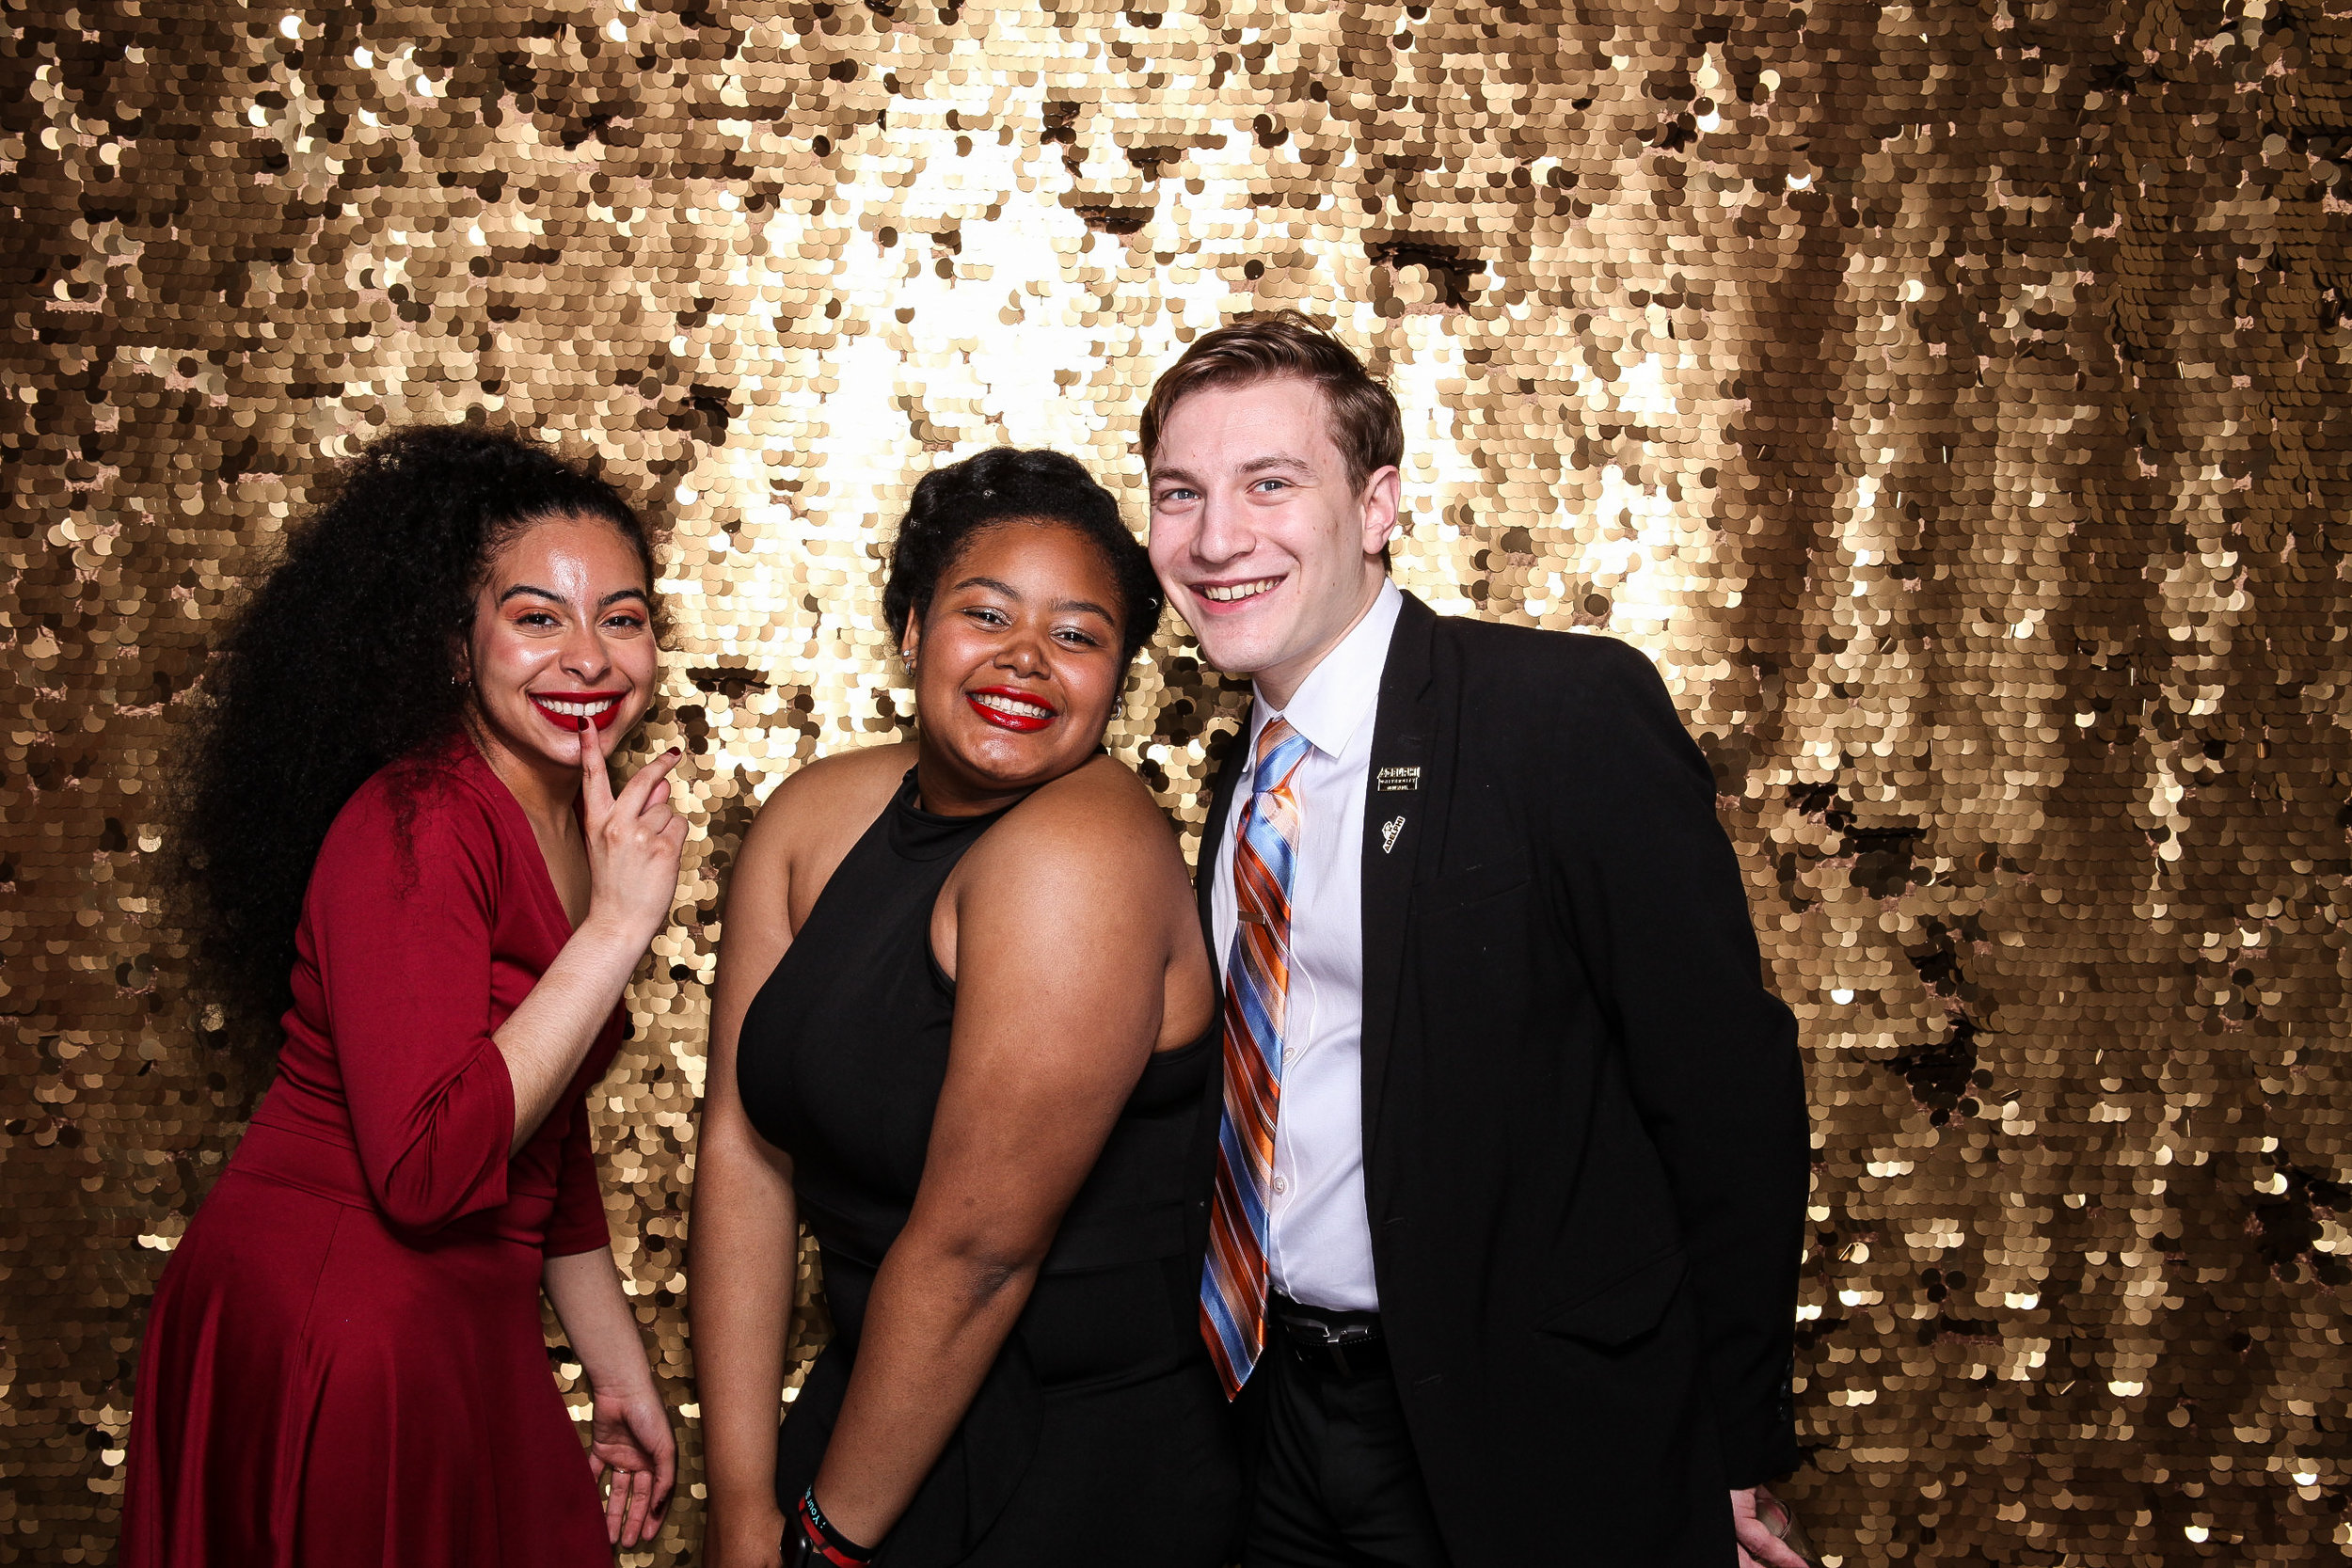 20190503_Adelphi_Senior_Formal-398.jpg